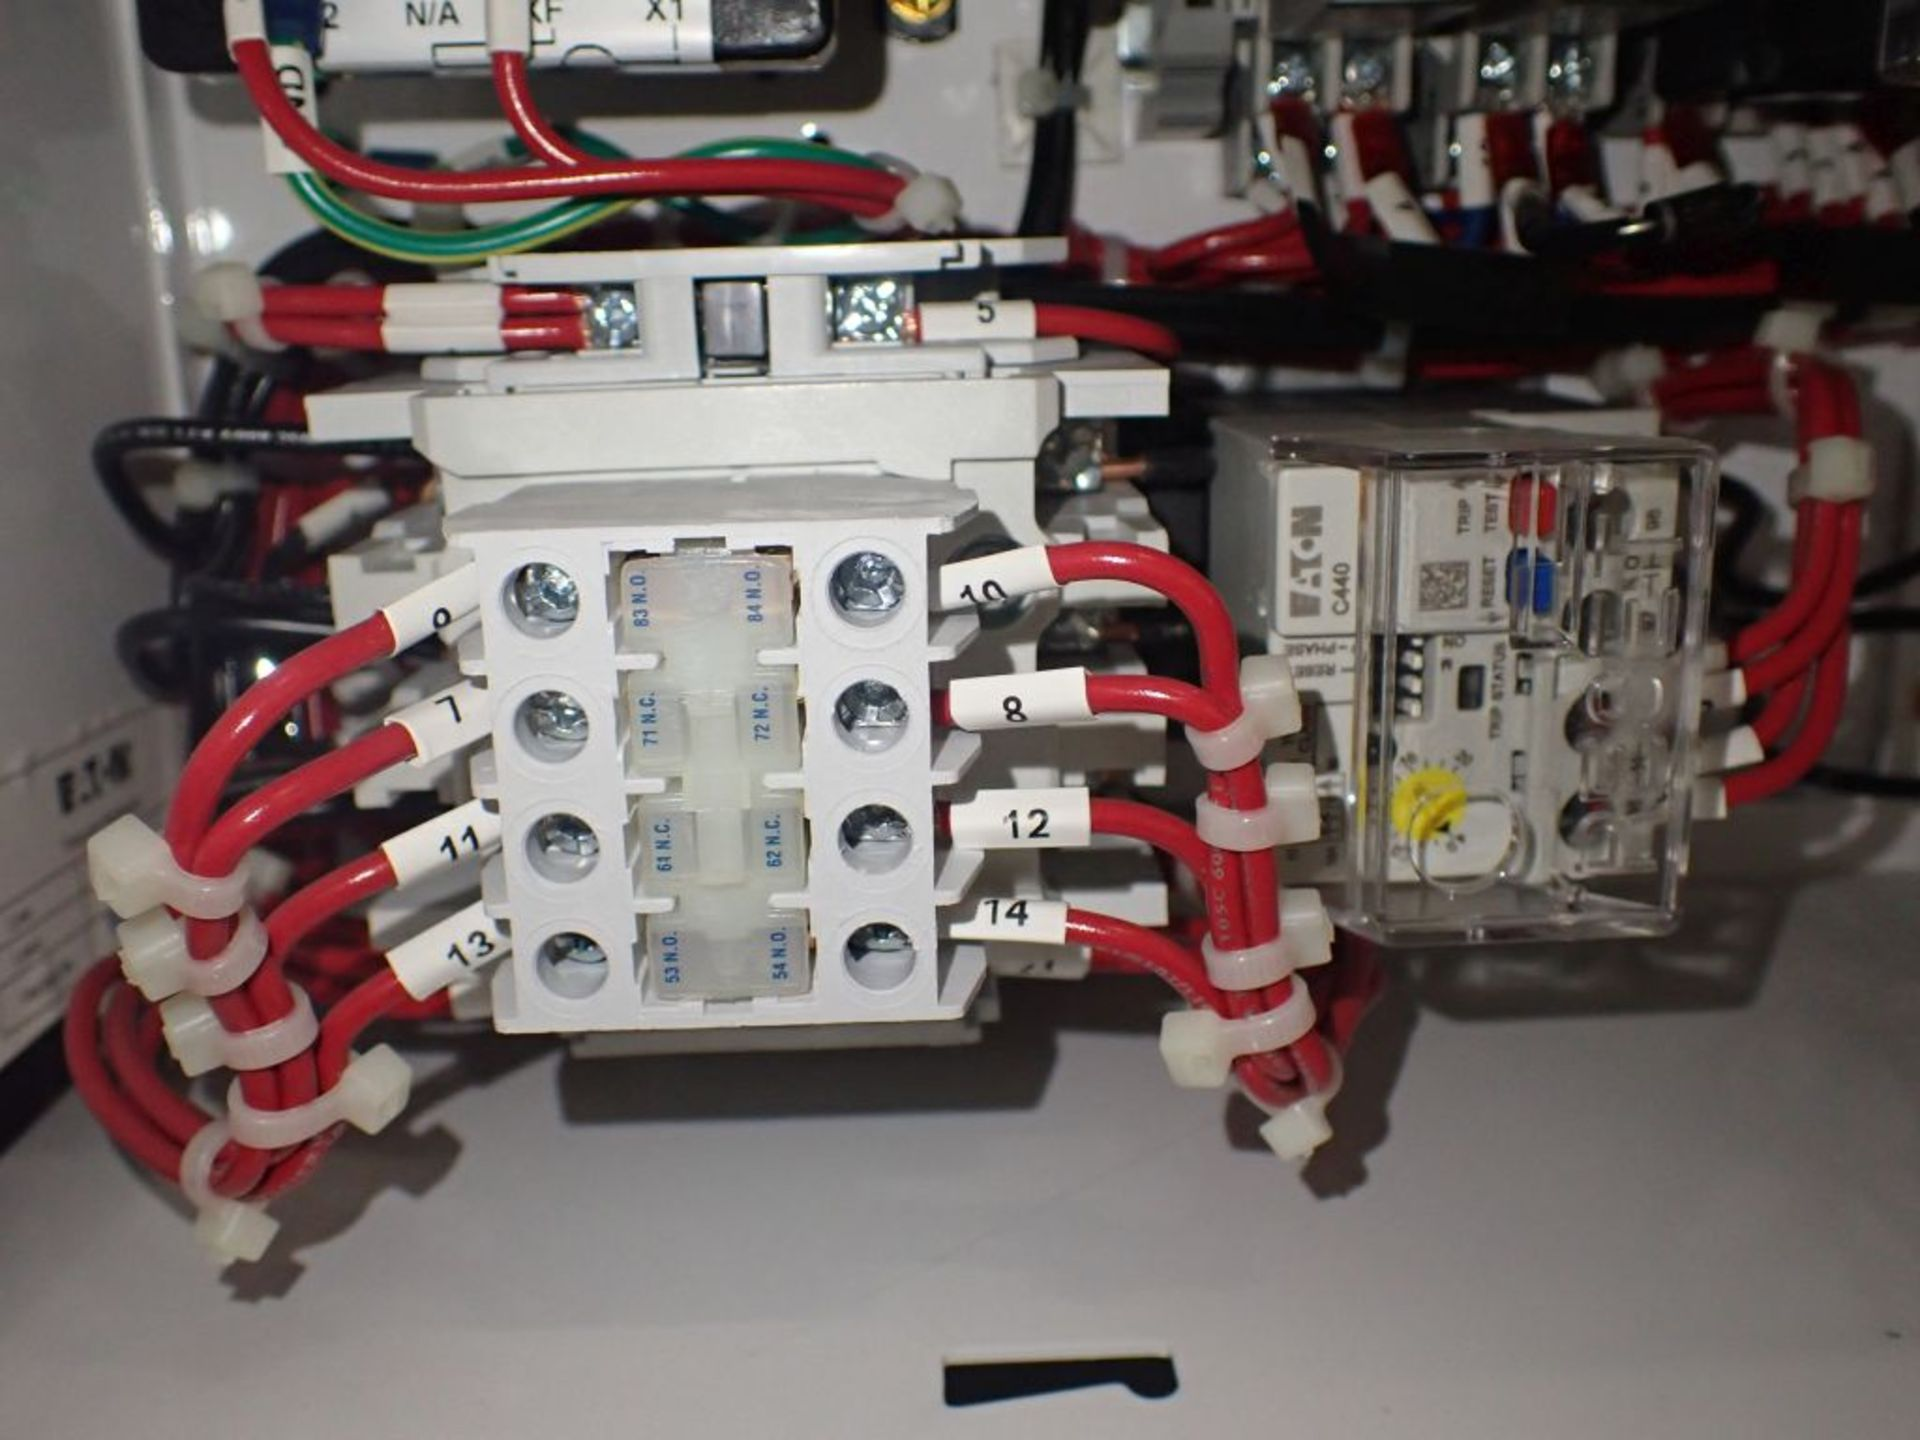 Eaton Freedom Flashgard Motor Control Center w/Components | (5) F206-15A-10HP; (4) F206-30A-10HP; ( - Image 41 of 84